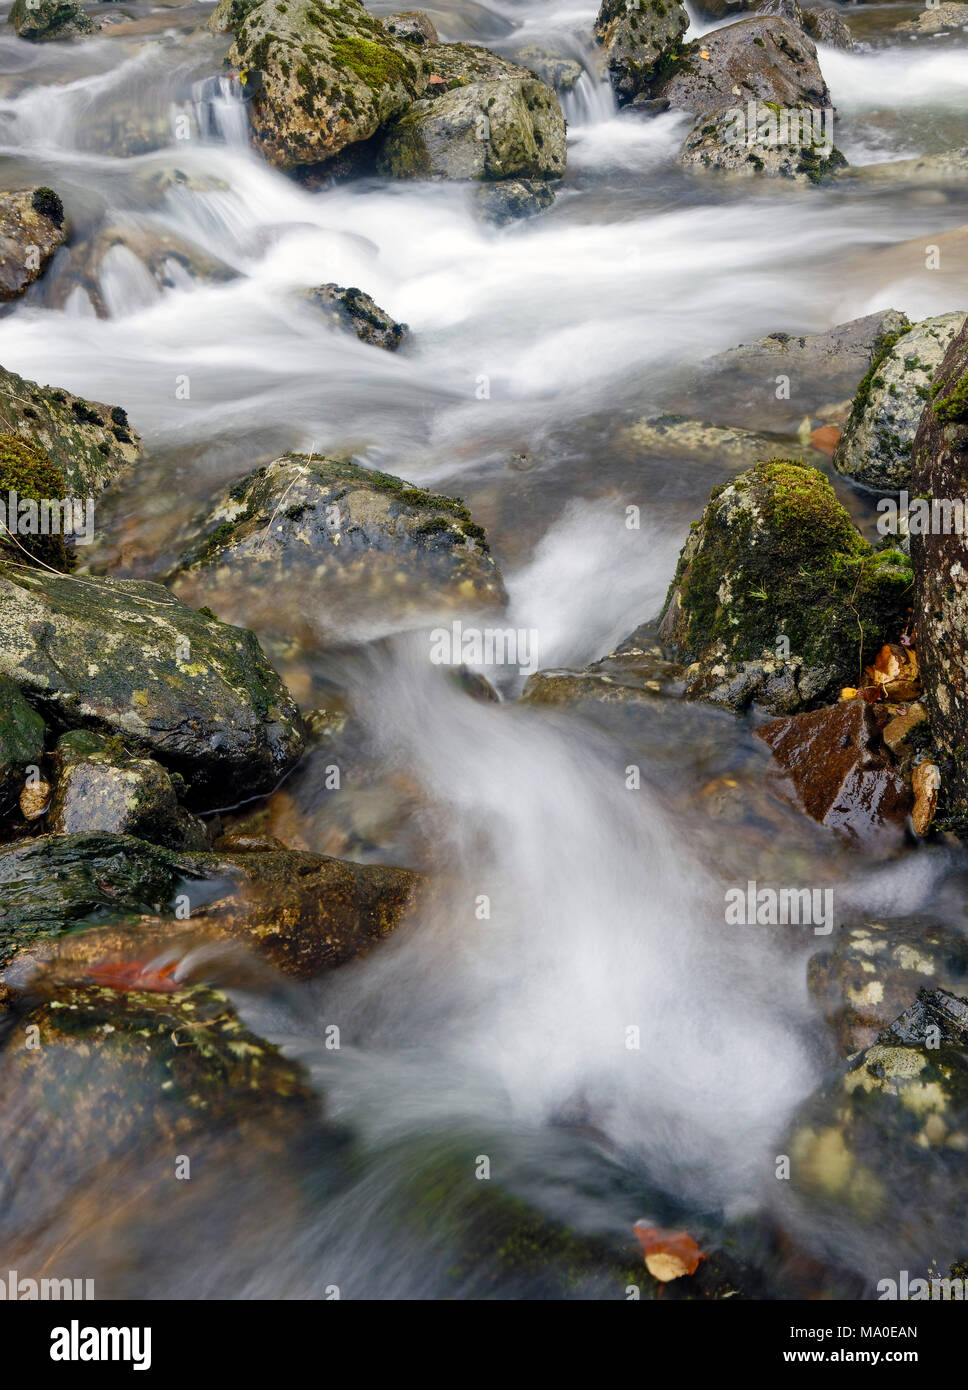 A close up view of Fisher Gill river as it tumbles towards Thirlmere in the English Lake District. - Stock Image